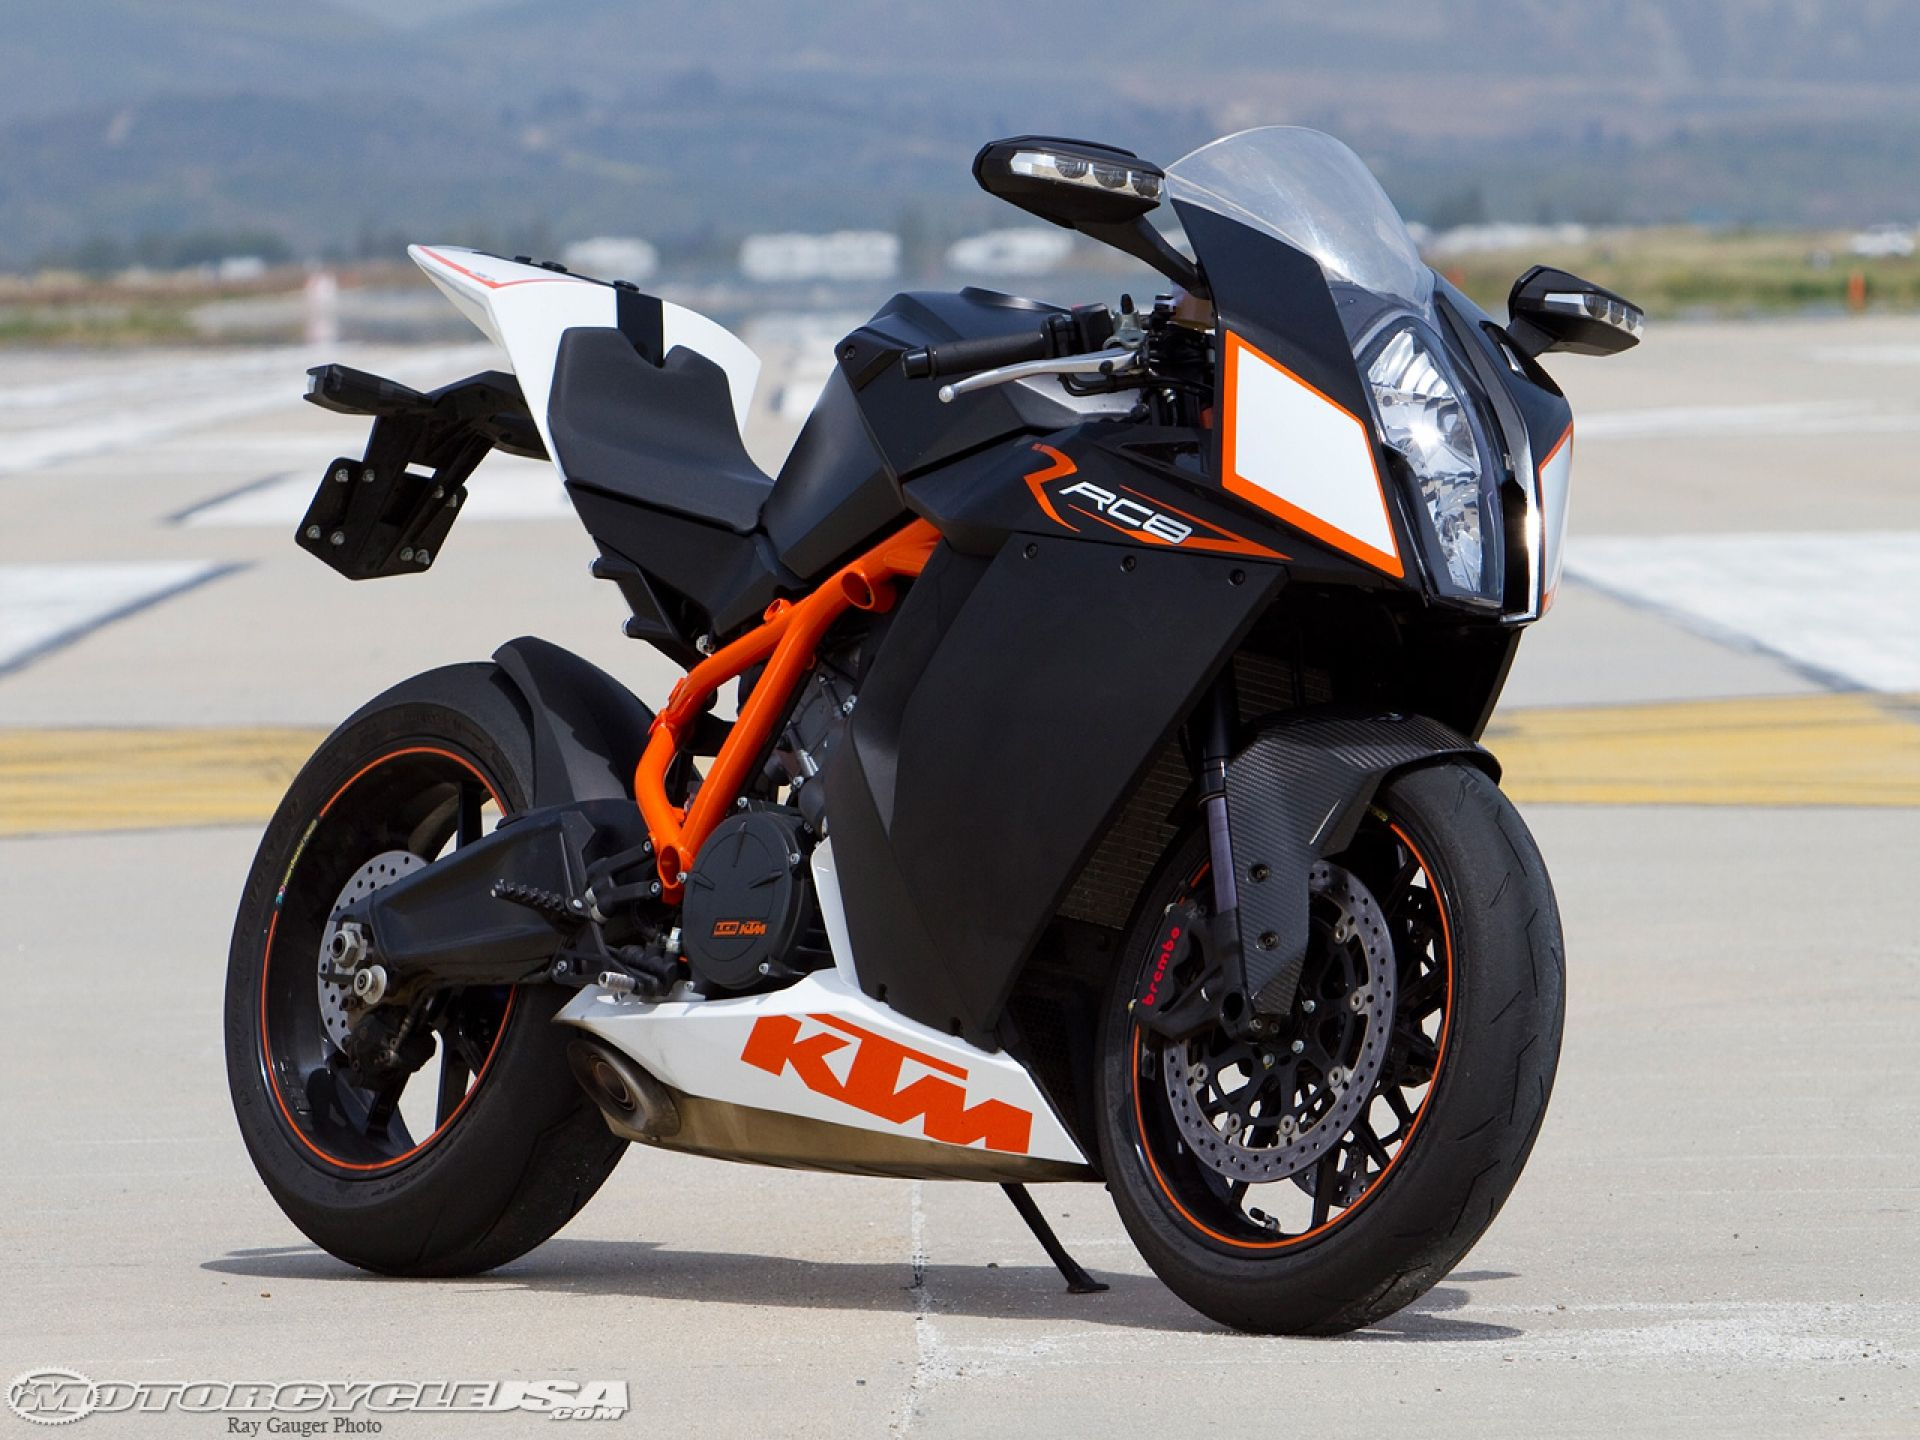 1920x1440 - KTM RC8 Wallpapers 3